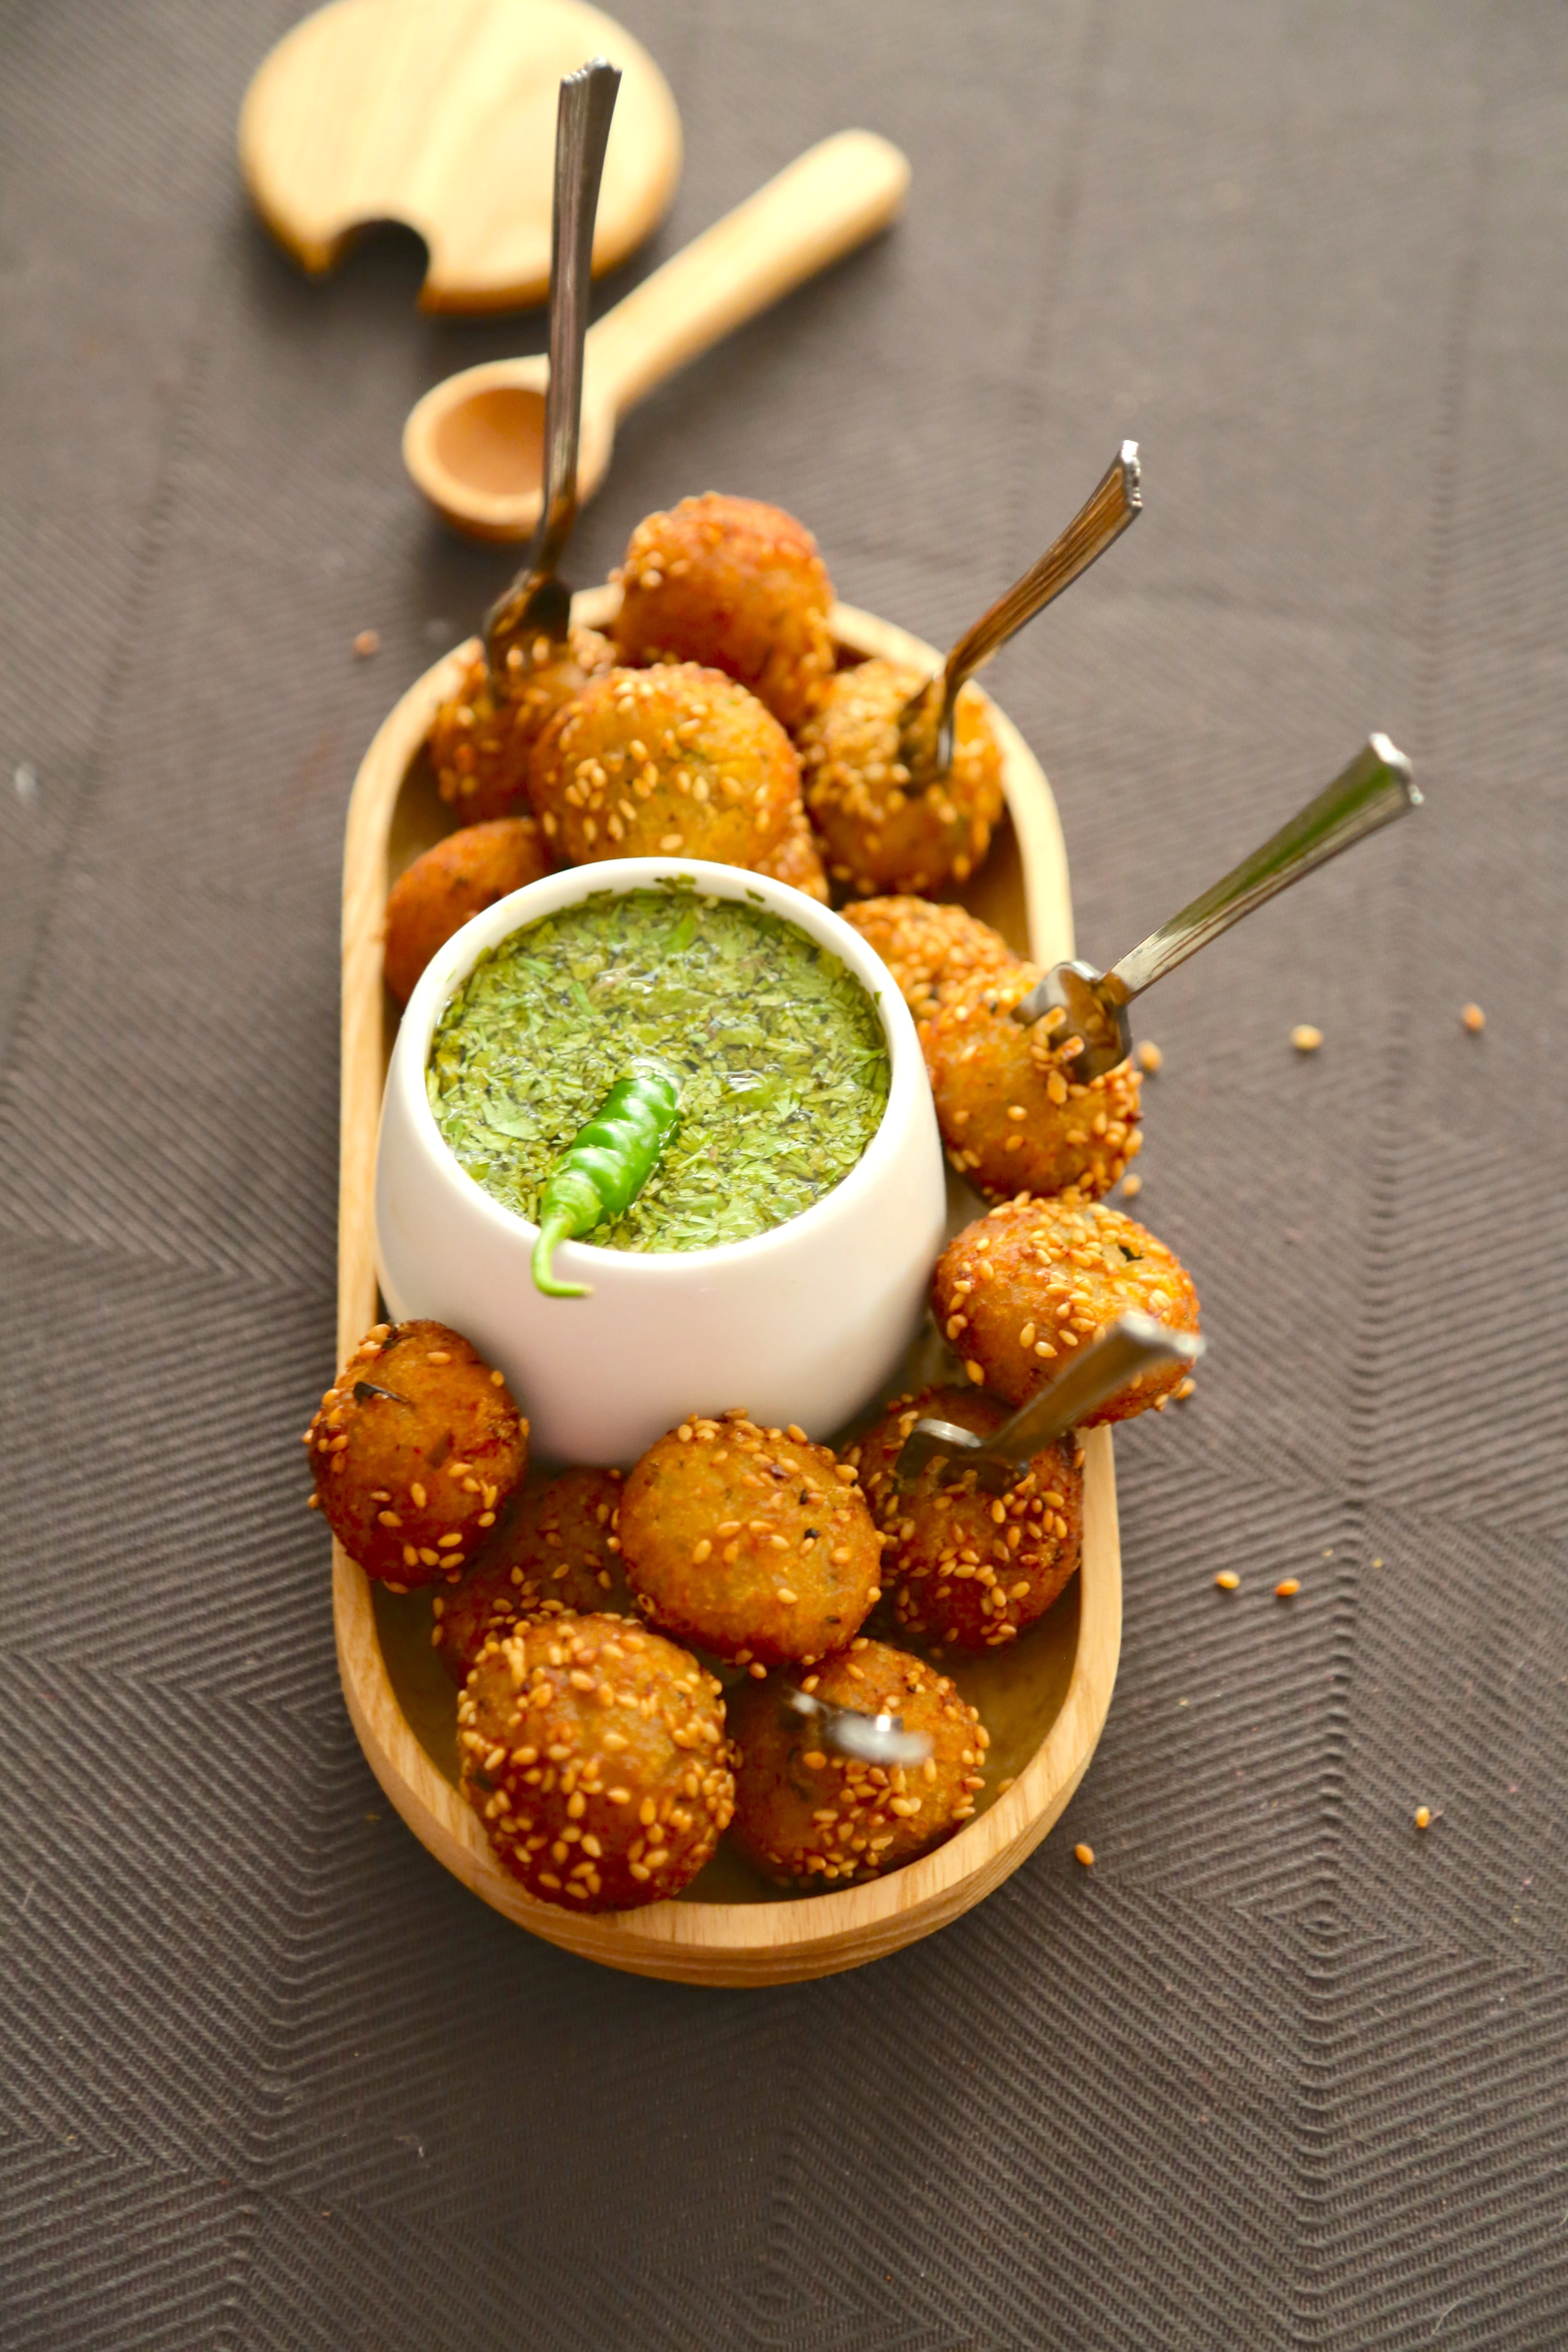 Crispy Sweet Potato and Sesame Balls with Coriander Dip